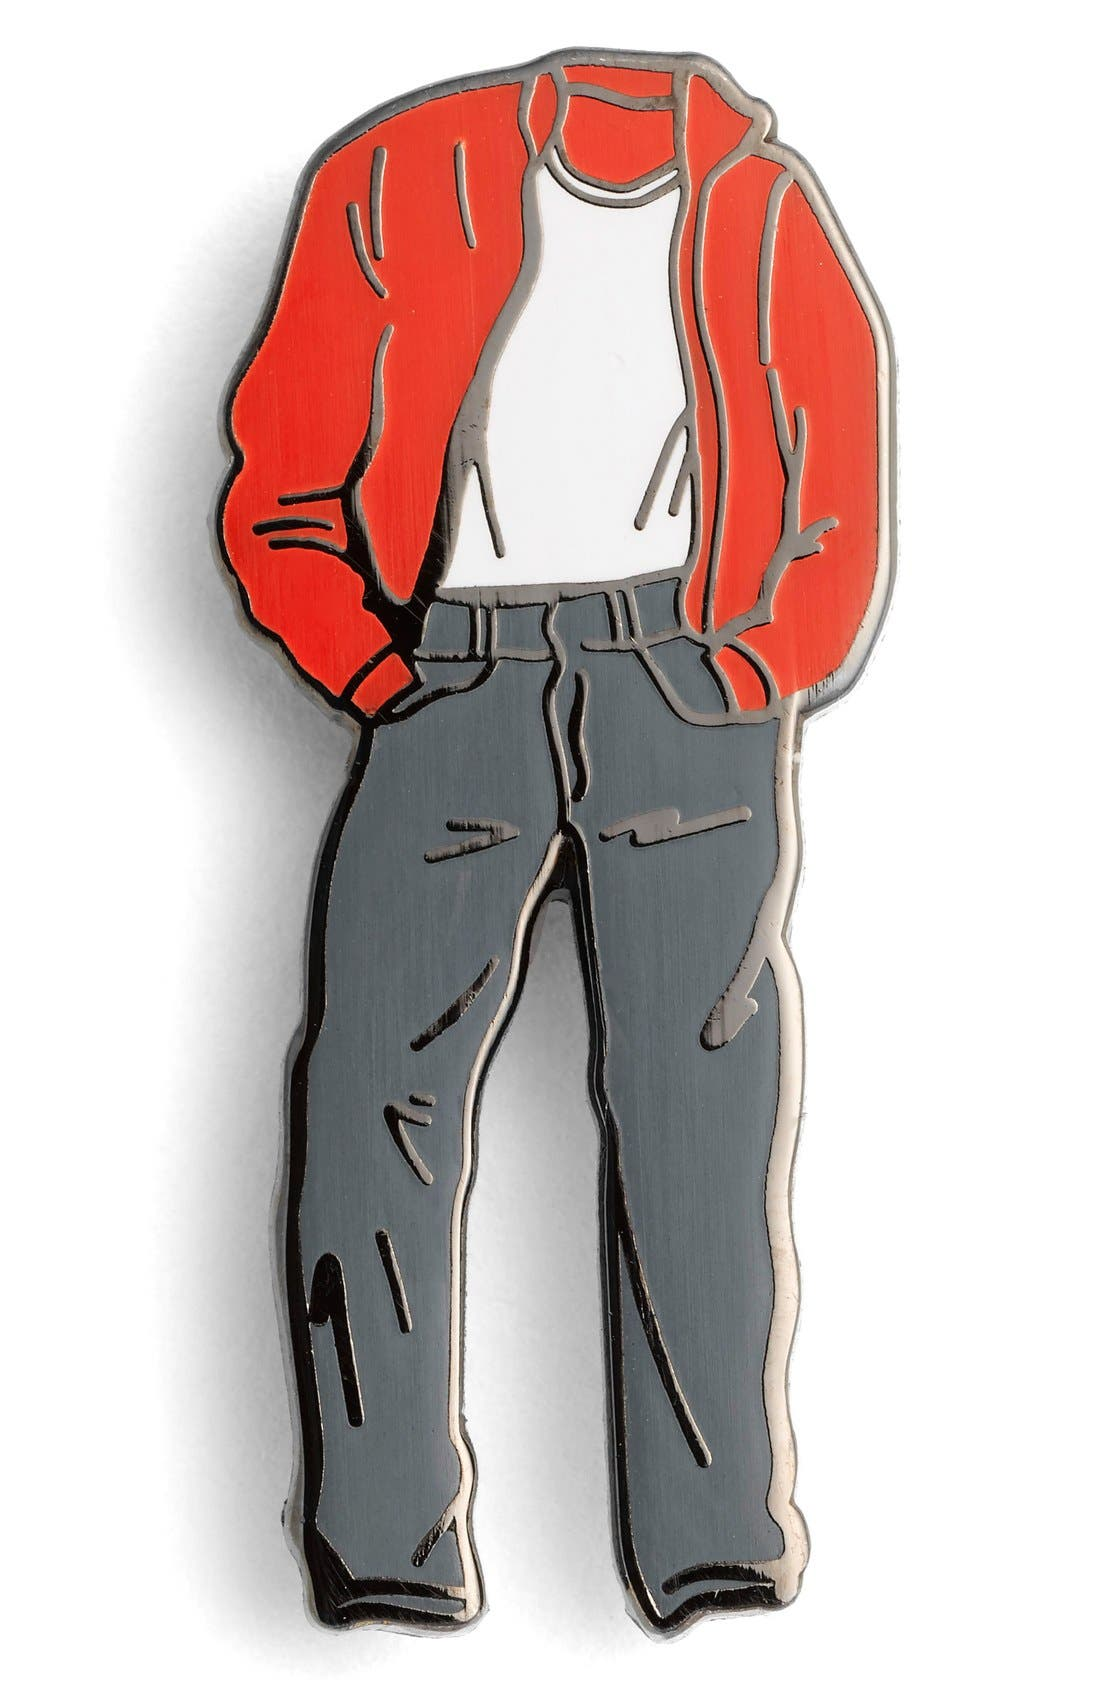 Alternate Image 1 Selected - PINTRILL 'Jim Stark' Fashion Accessory Pin